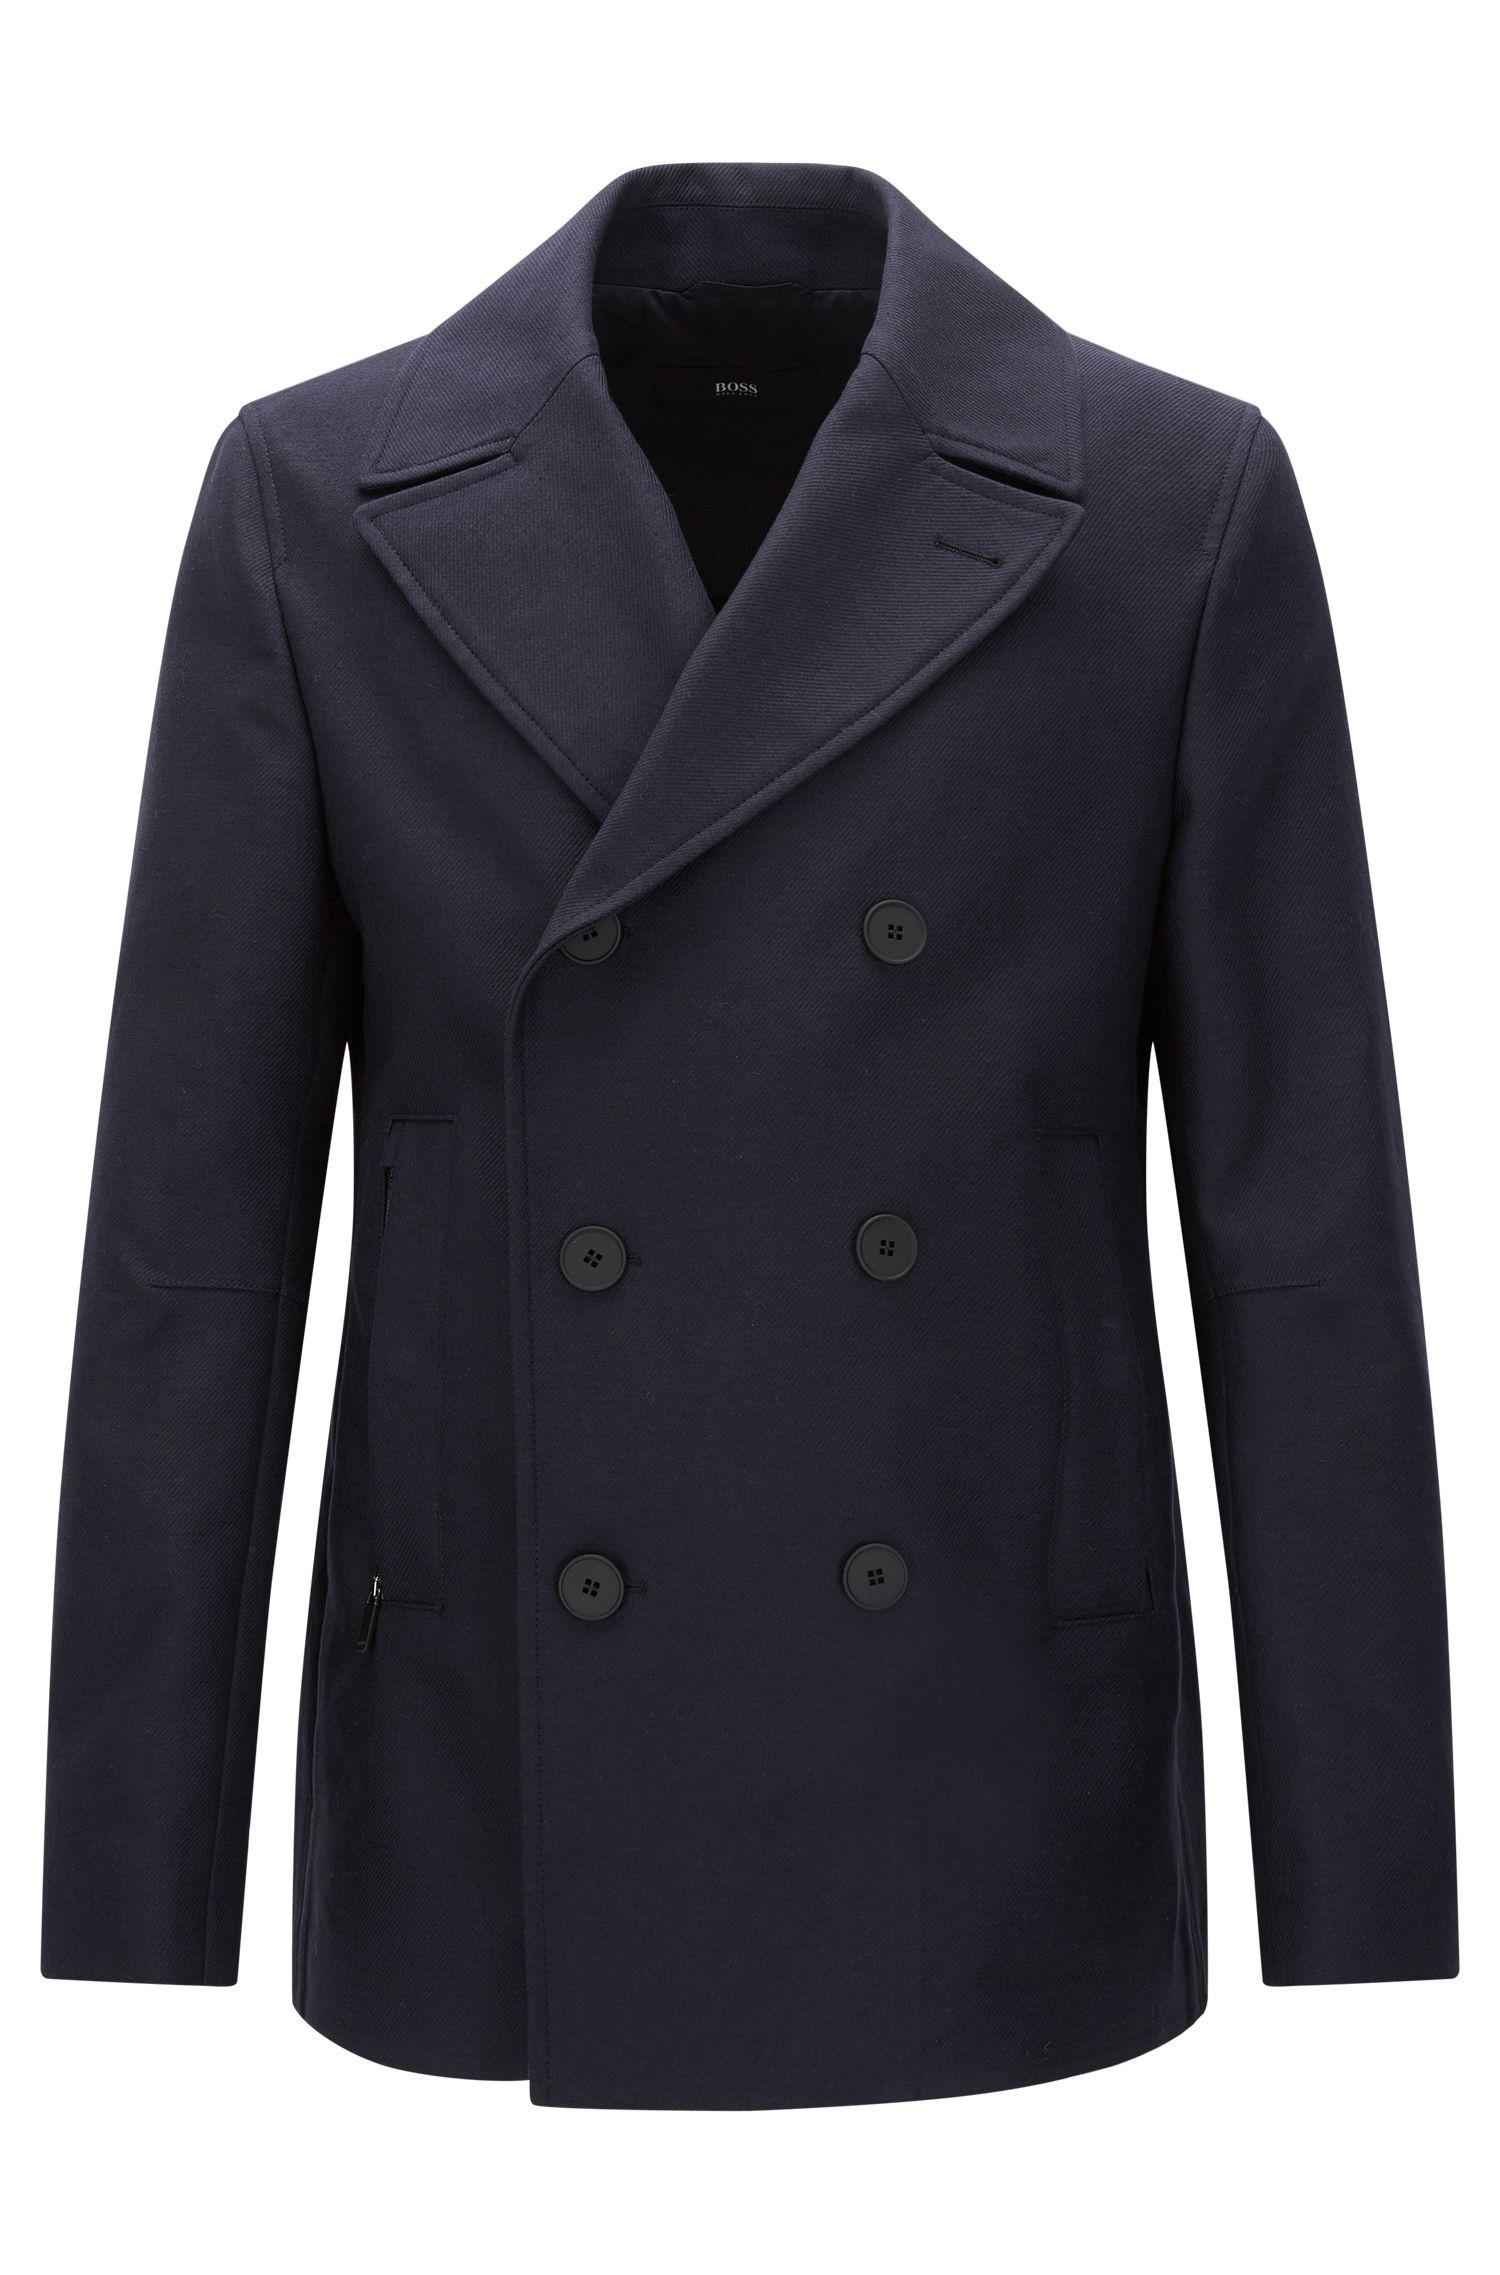 Manteau court Slim Fit en coton imperméable : « Namid »